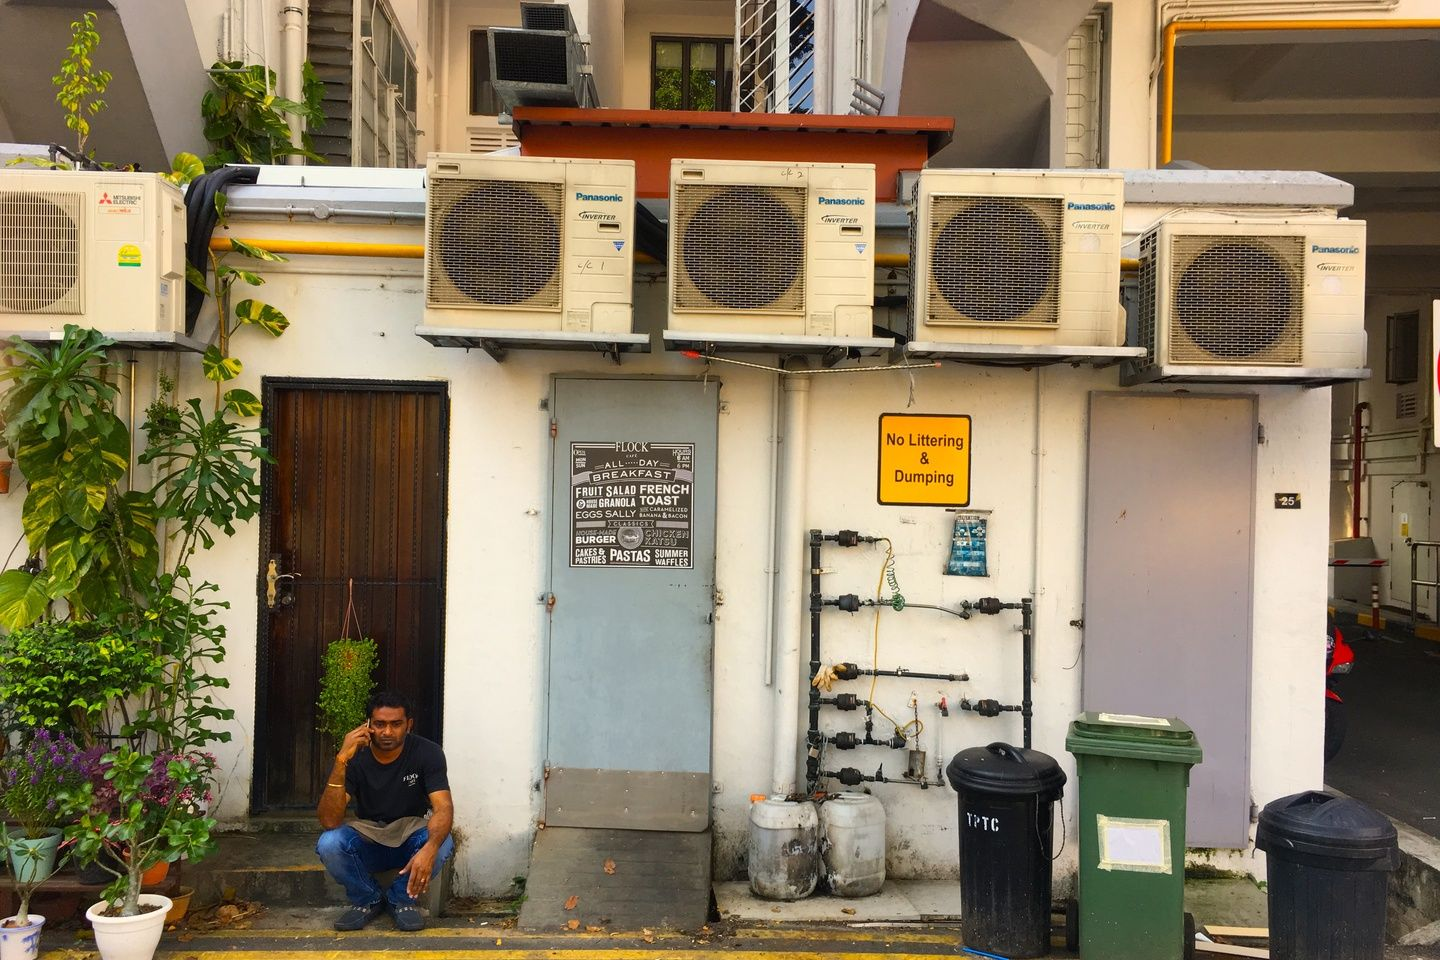 Aircon addicted Singapore seeks new ways to escape urban